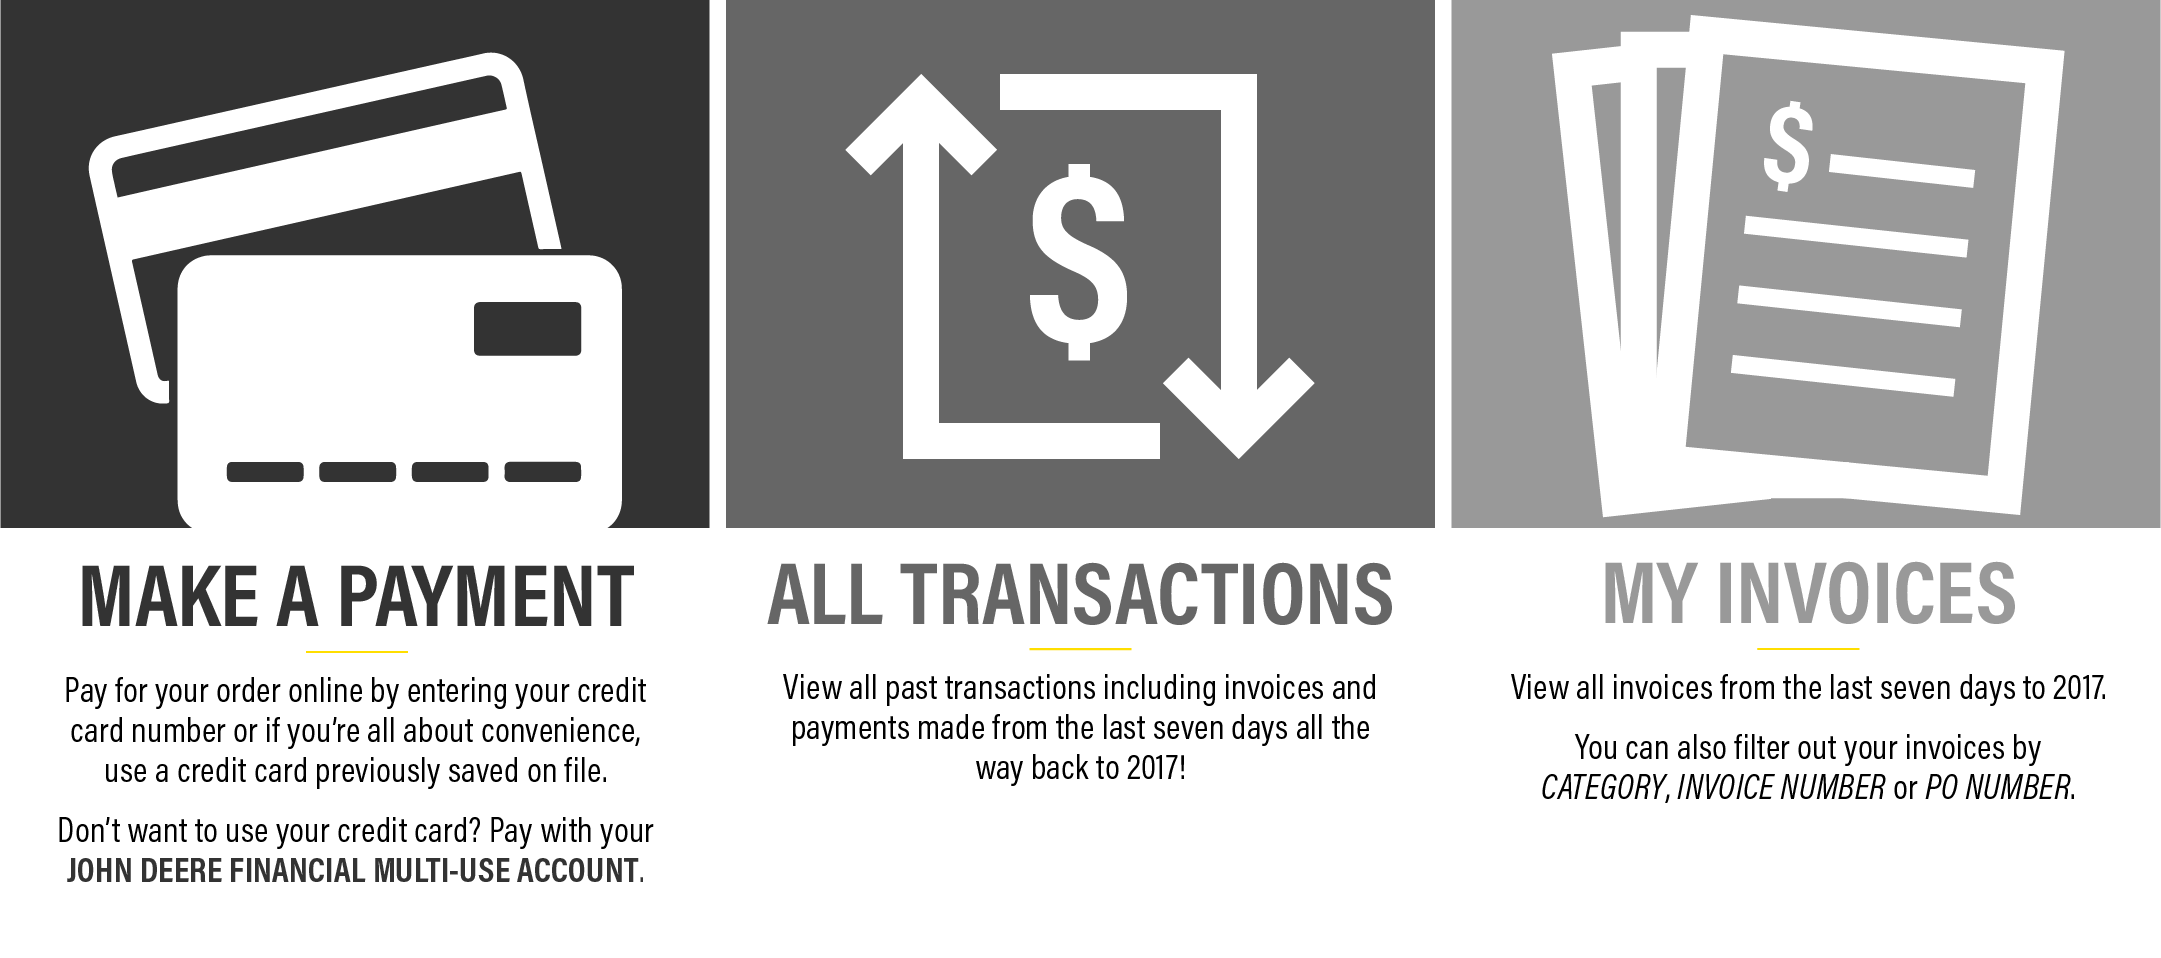 All Transactions & My Invoices